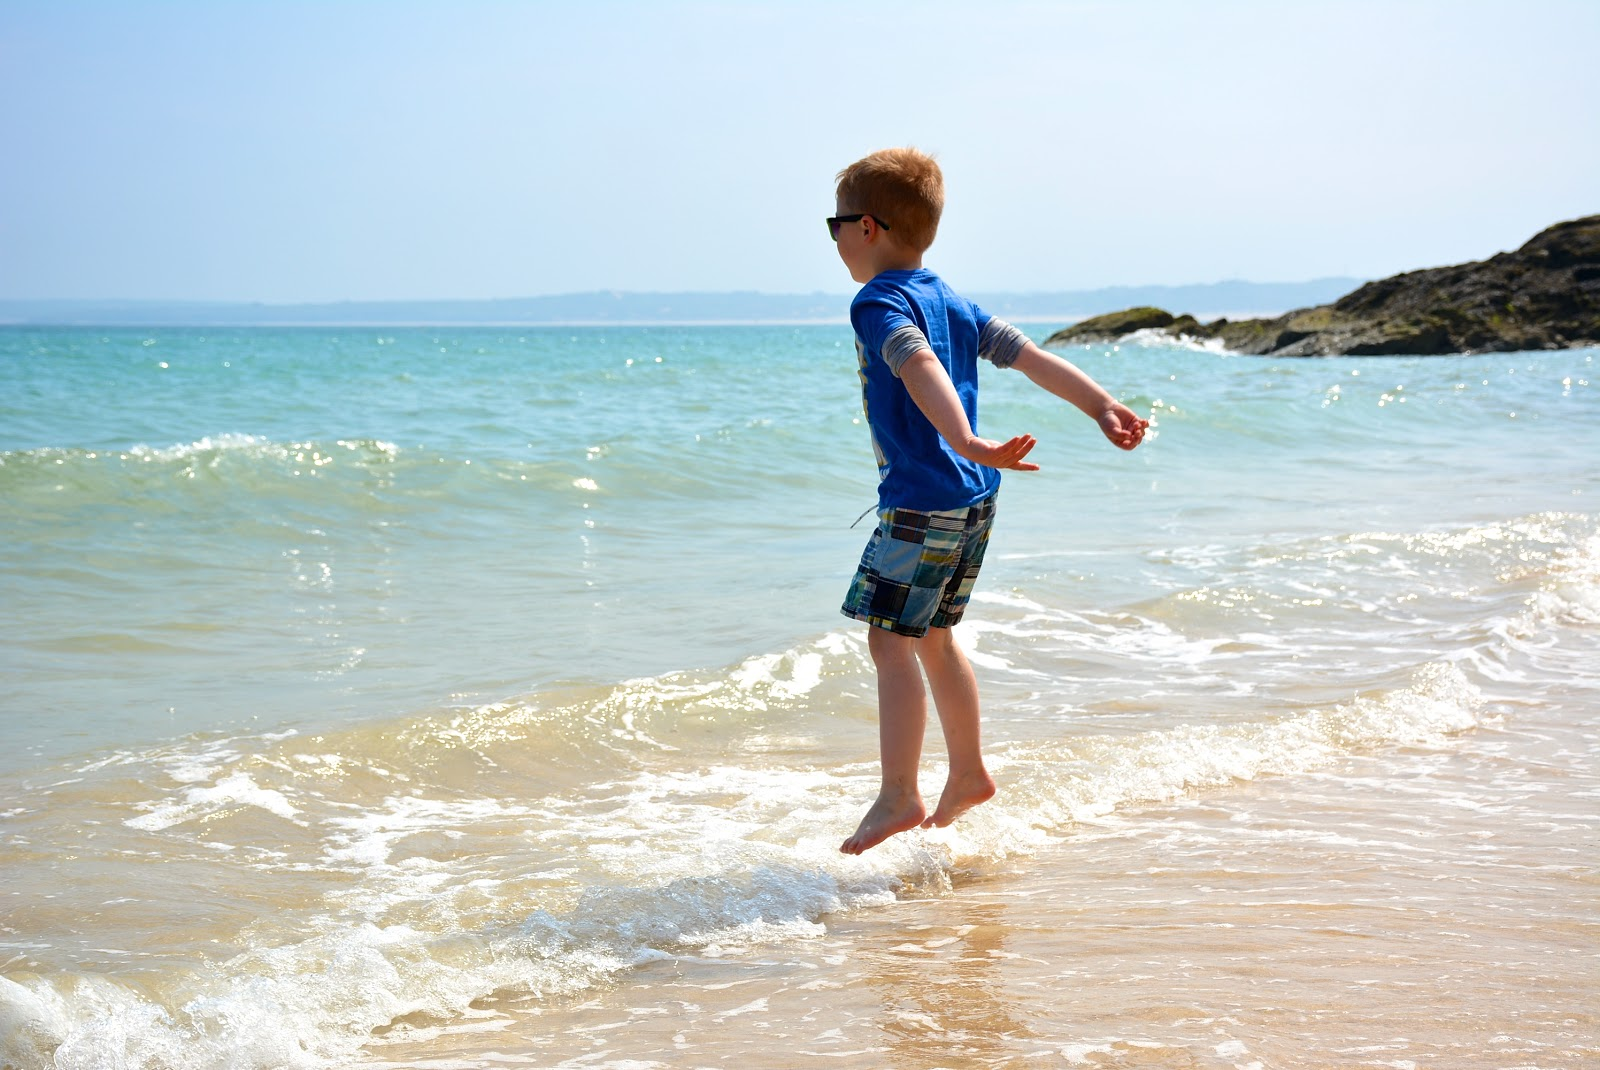 Jackson levitates above the beach in St. Ives, Cornwall